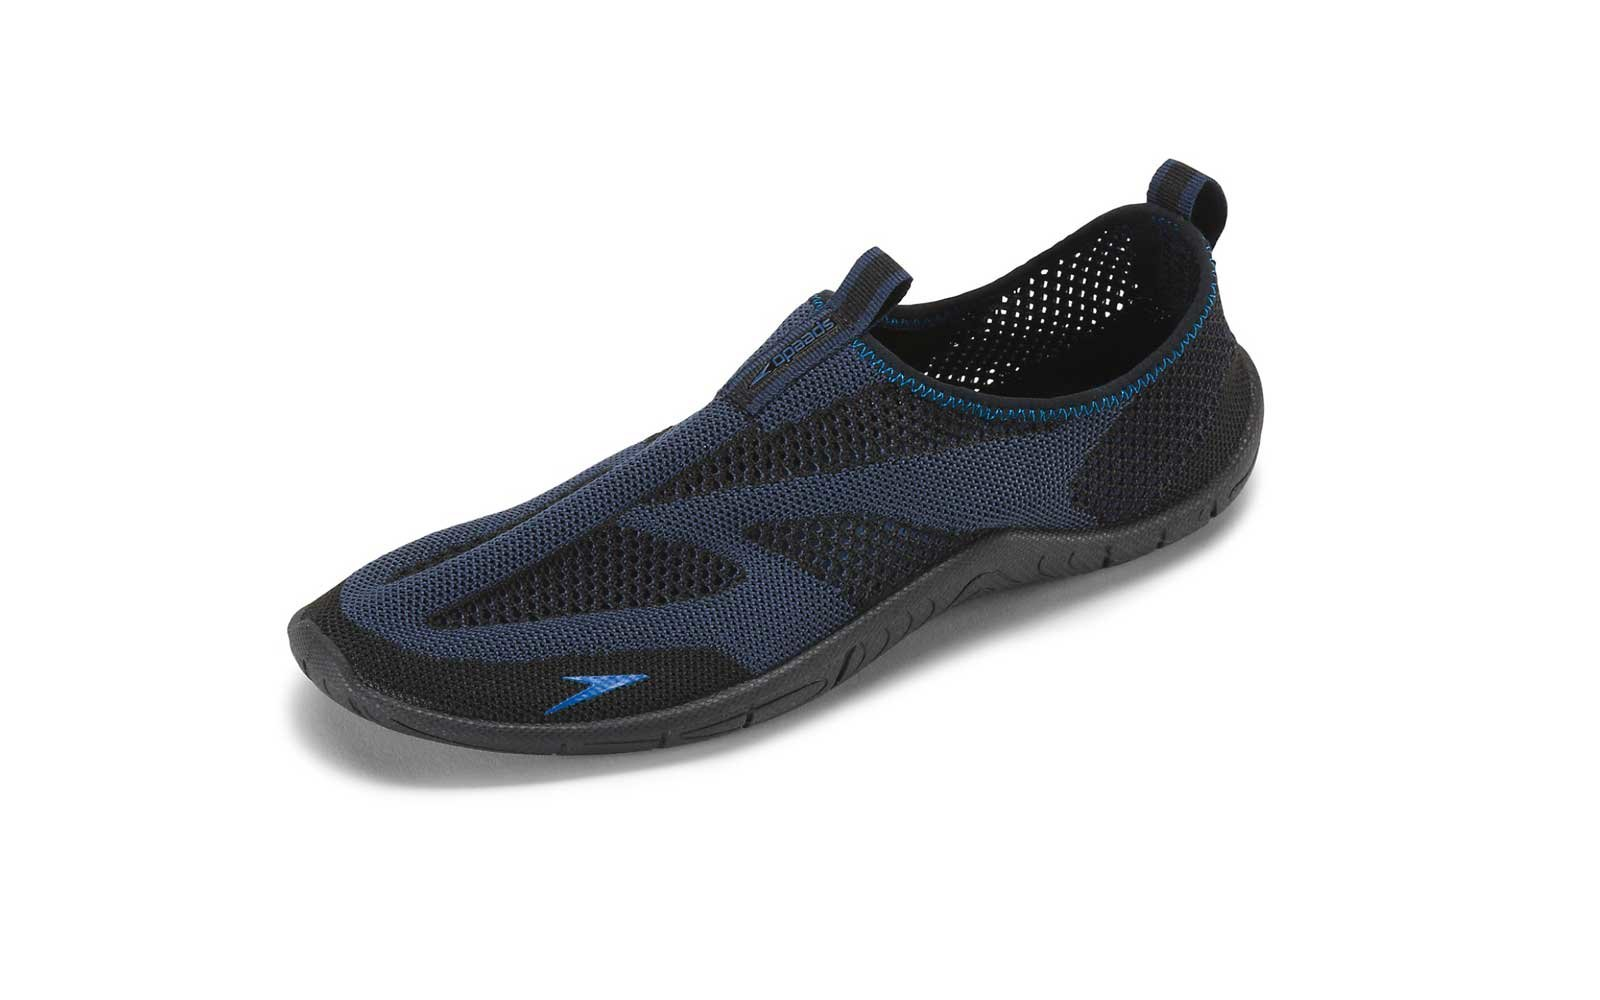 2c1dbb41c4be93 Speedo Surf Knit Water Shoes. mens speedo water shoes